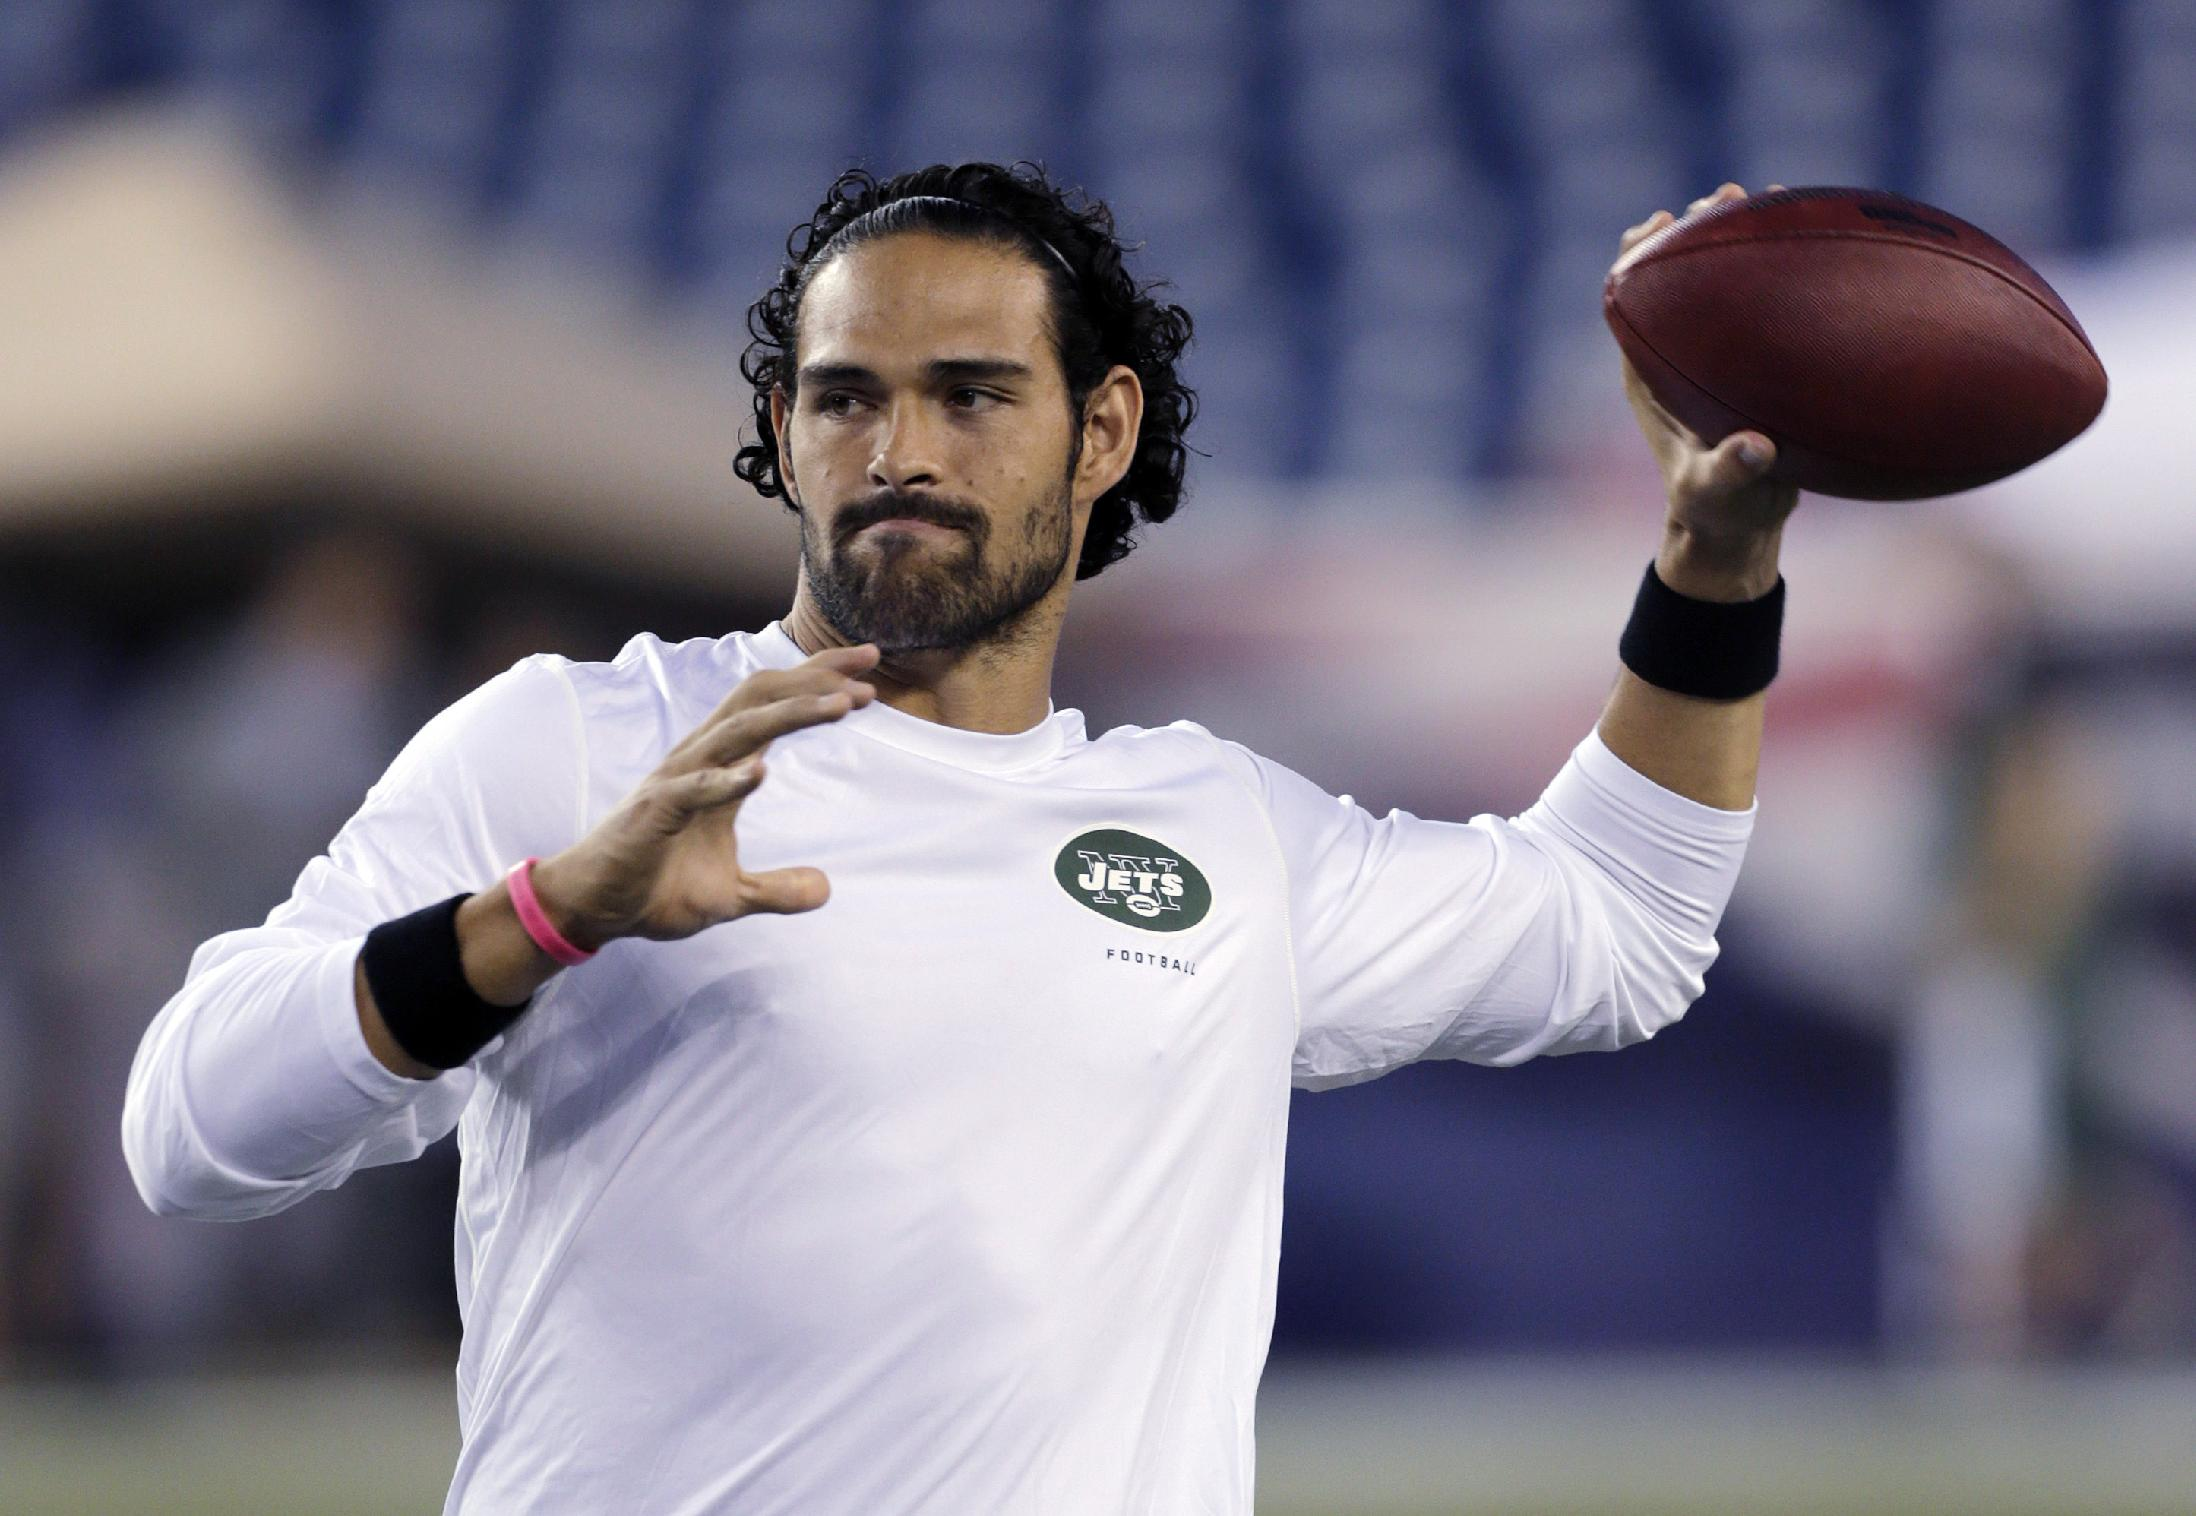 New York Jets quarterback Mark Sanchez, who normally throws right-handed, throws a pass with his left hand before an NFL football game between the New England Patriots and the Jets on Thursday, Sept. 12, 2013, in Foxborough